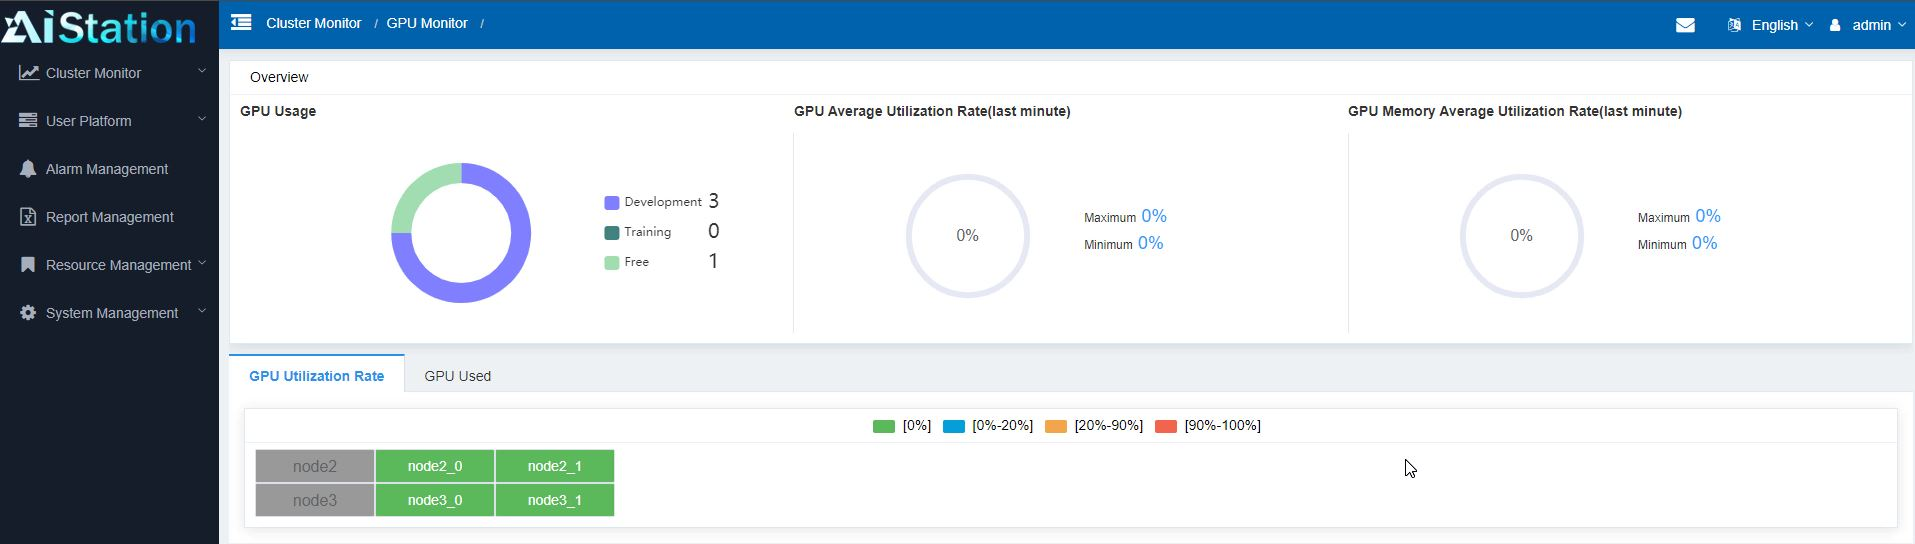 Inspur AIStation Admin Cluster Monitor